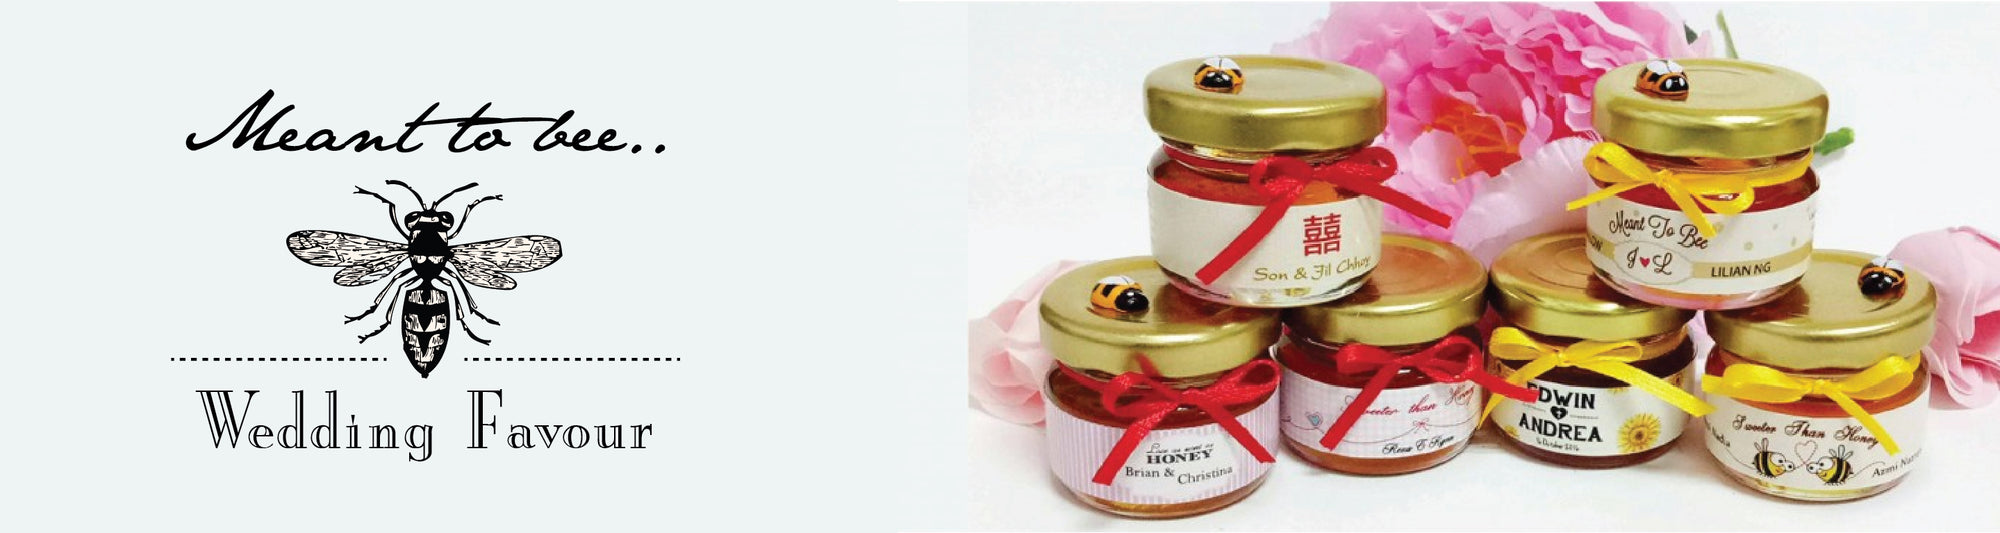 Wedding Karren - Quality Wedding Favours, Door Gifts & Invitations